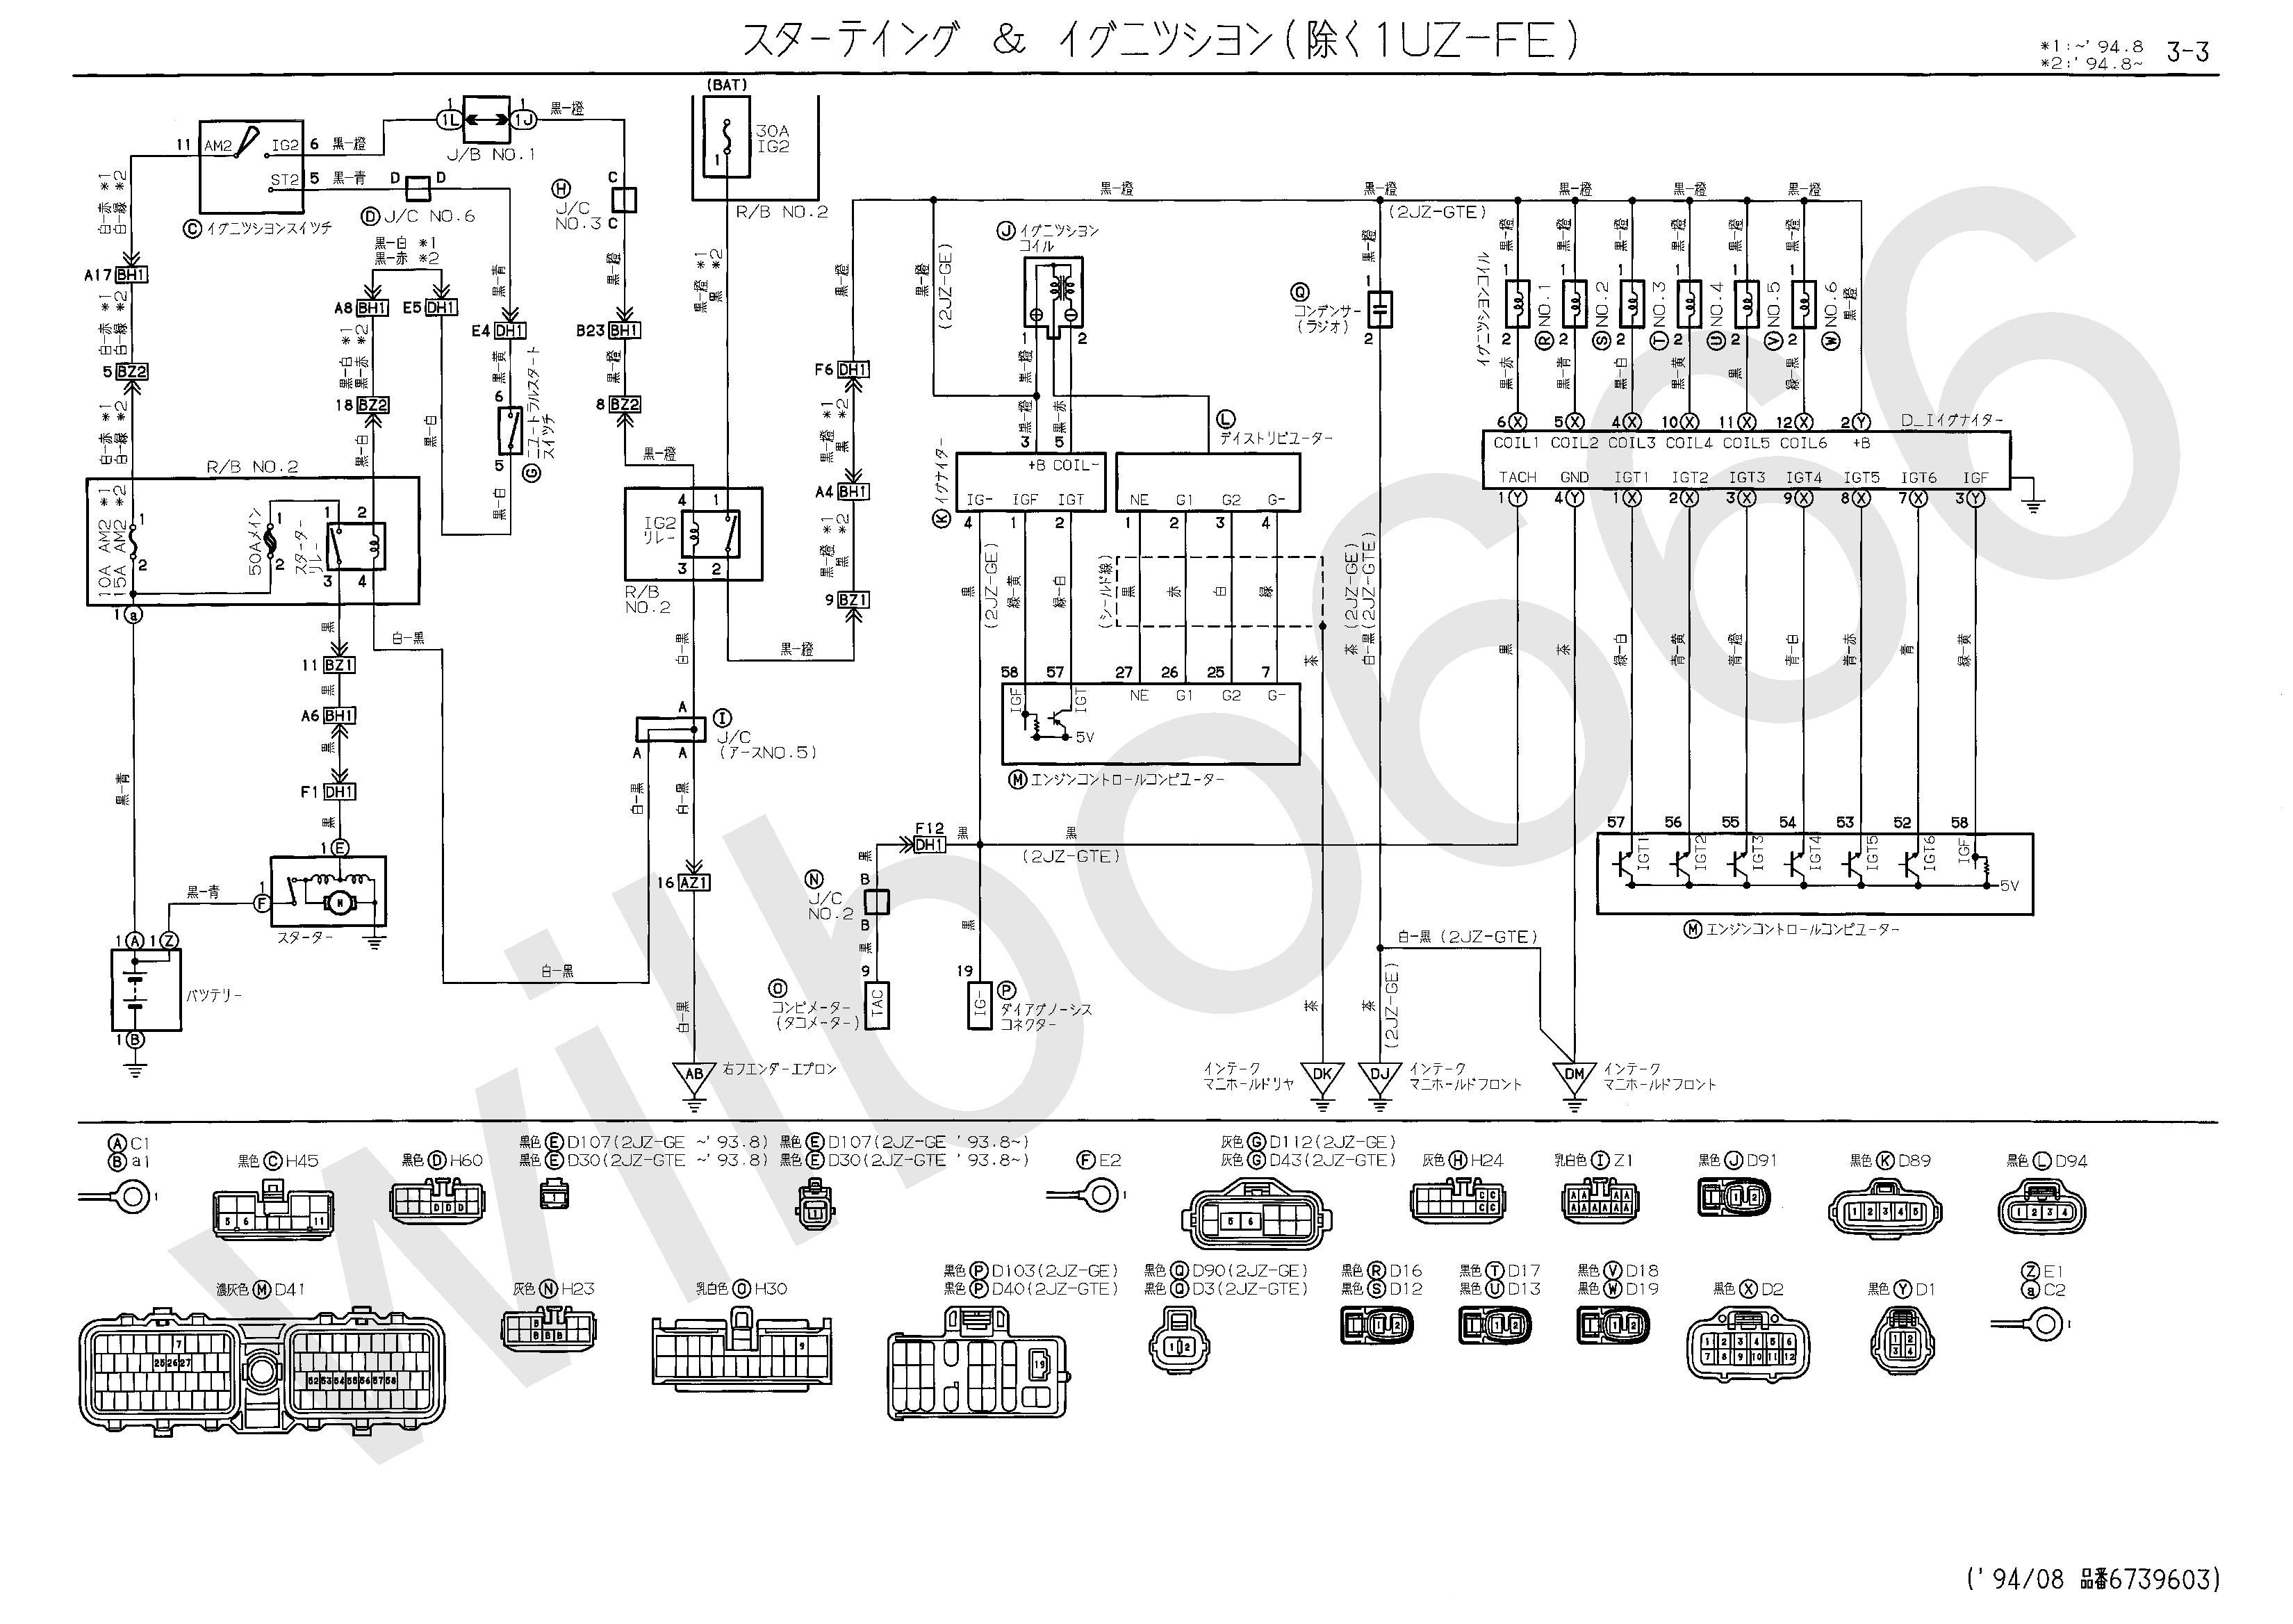 JZS14%23%2C UZS14%23 Electrical Wiring Diagram 6739604 3 3 wilbo666 2jz ge jzs147 engine wiring 2jz wiring harness at honlapkeszites.co